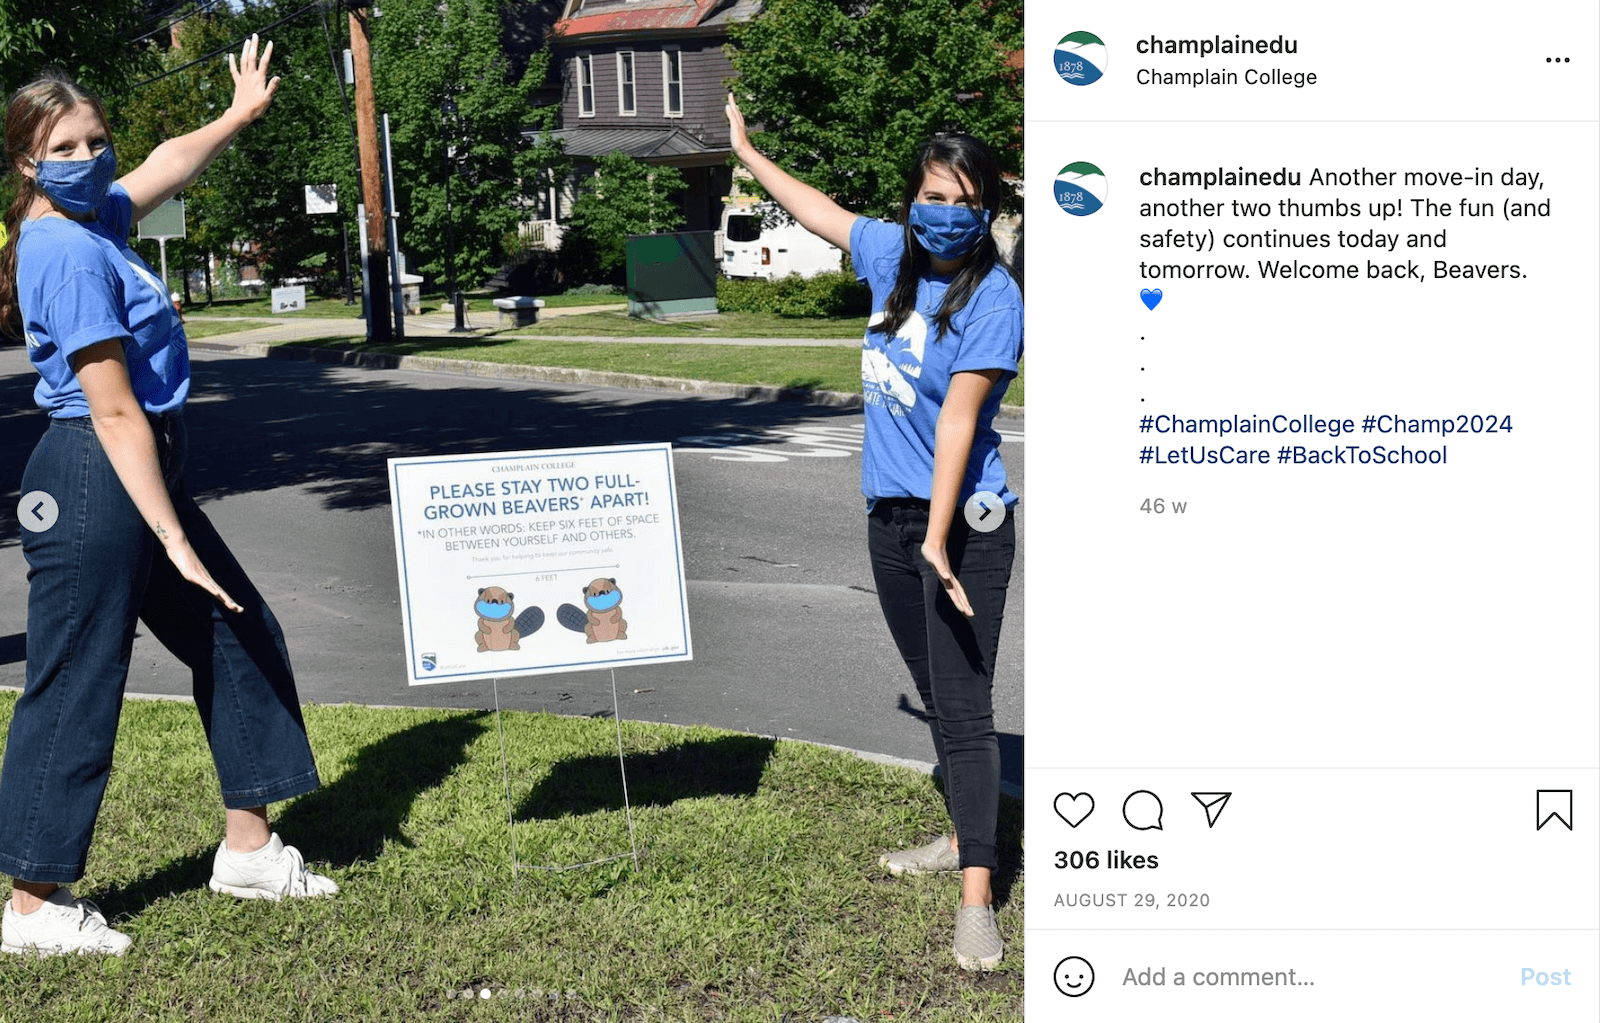 """Instagram post by champlainedu showing to students posing with a lawn sign that reads, """"Please stay two full-grown beavers apart!"""" and is illustrated with two beavers, the school's mascot. The caption reads, """"Another move-in day, another two thumbs up! The fun (and safety) continues today and tomorrow. Welcome back, Beavers. 💙"""""""